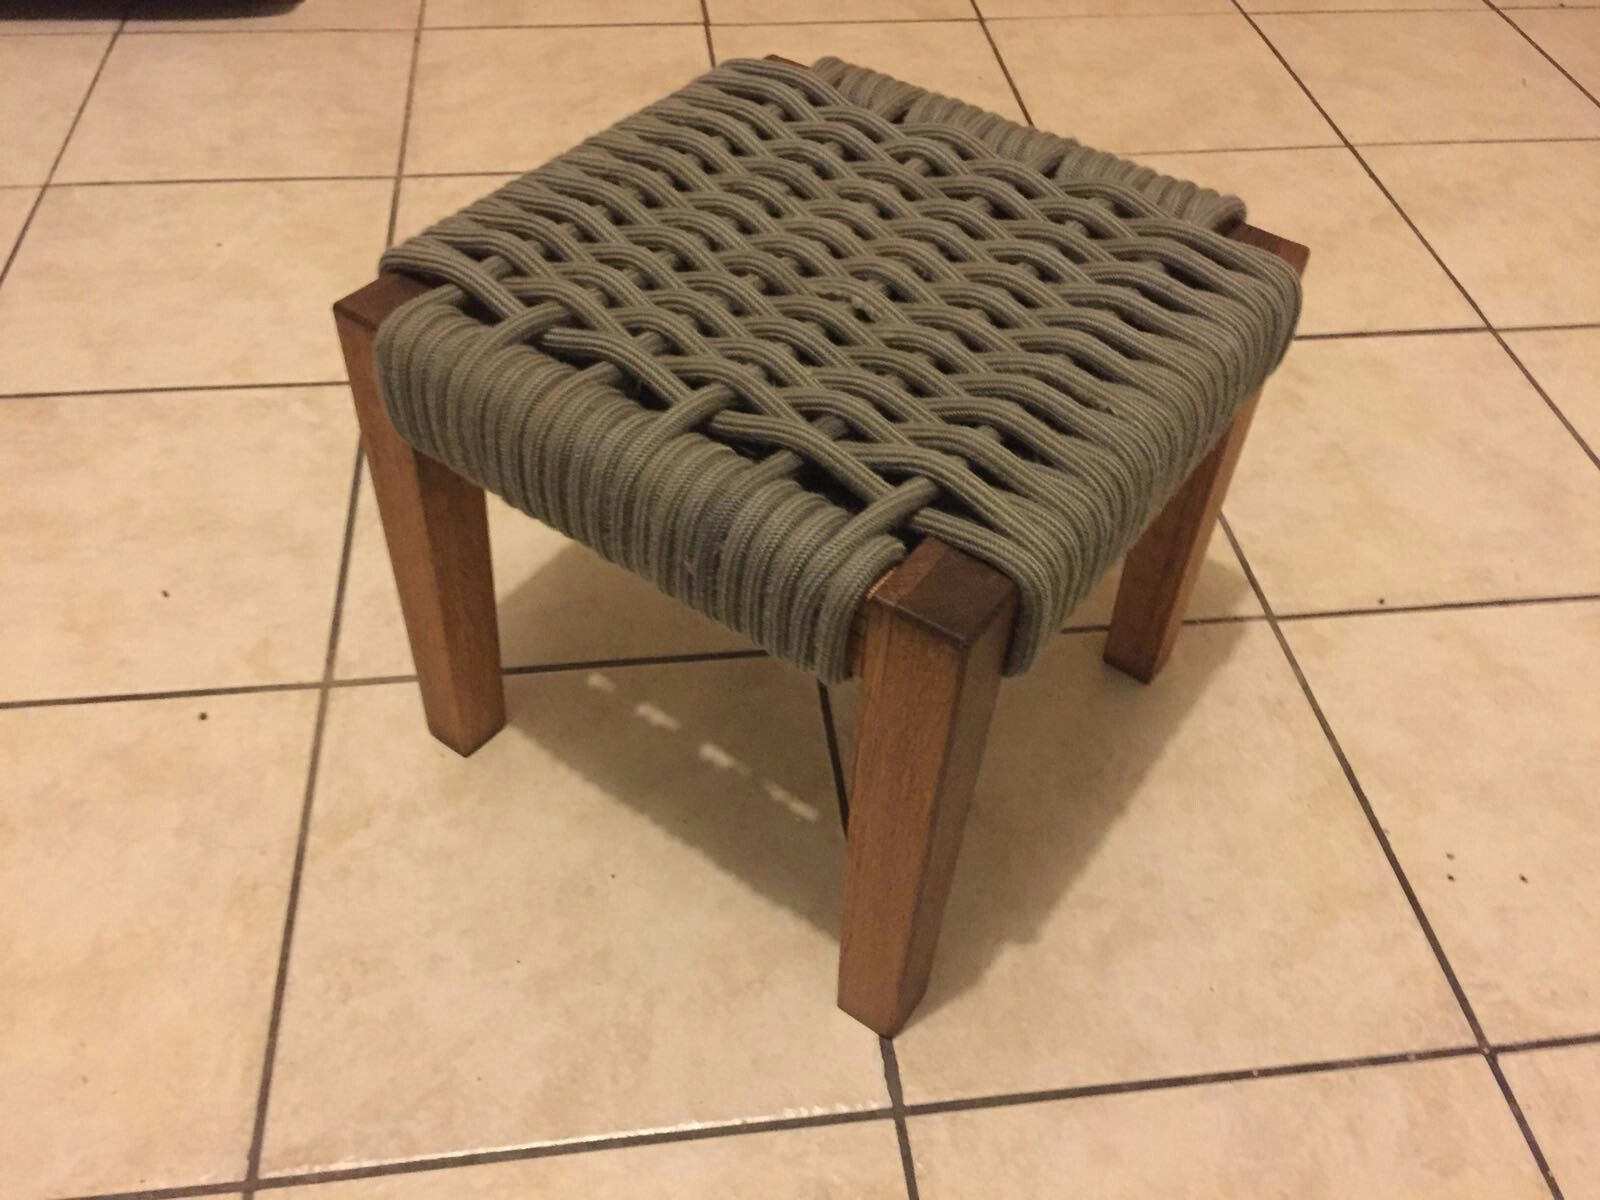 rope bottom chair zero gravity outdoor chairs reviews oiled reused oak framed stool using old climbing